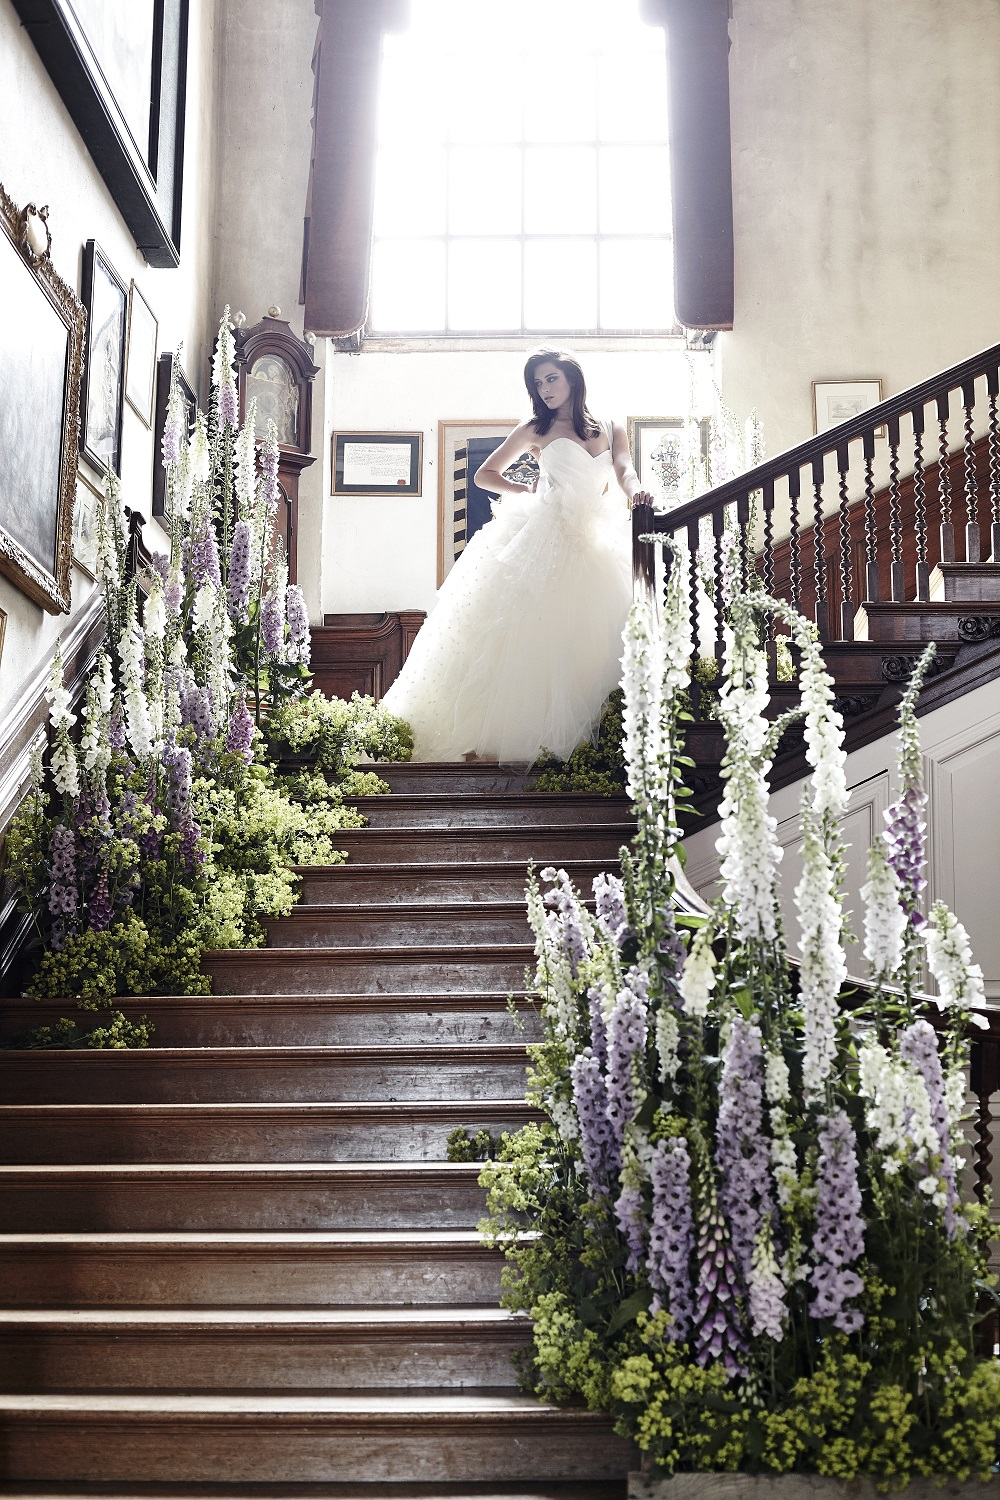 staircase_lupins.jpg